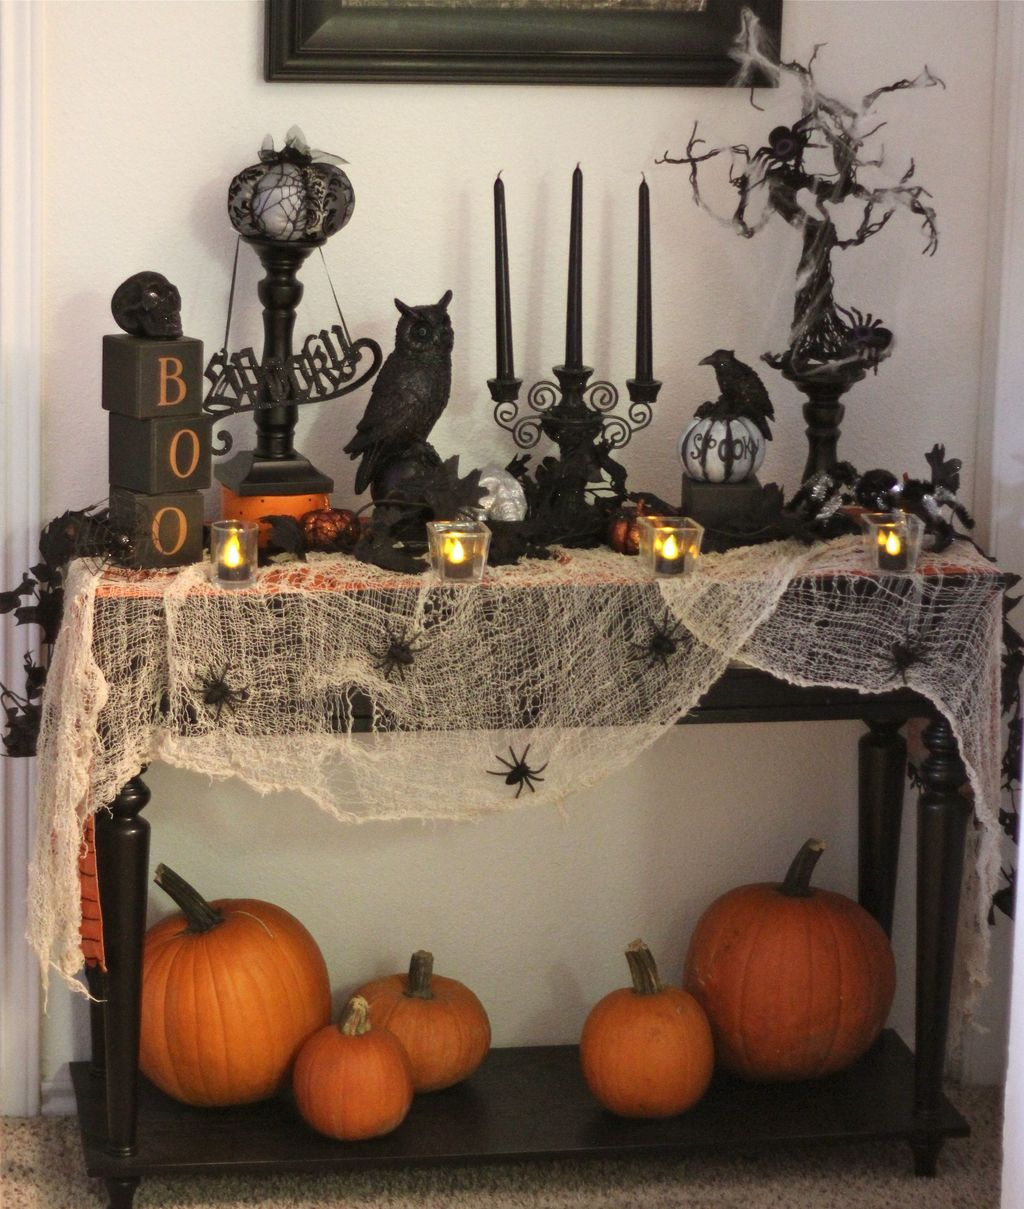 62 Stunning Halloween Decorations Indoor Ideas With Images